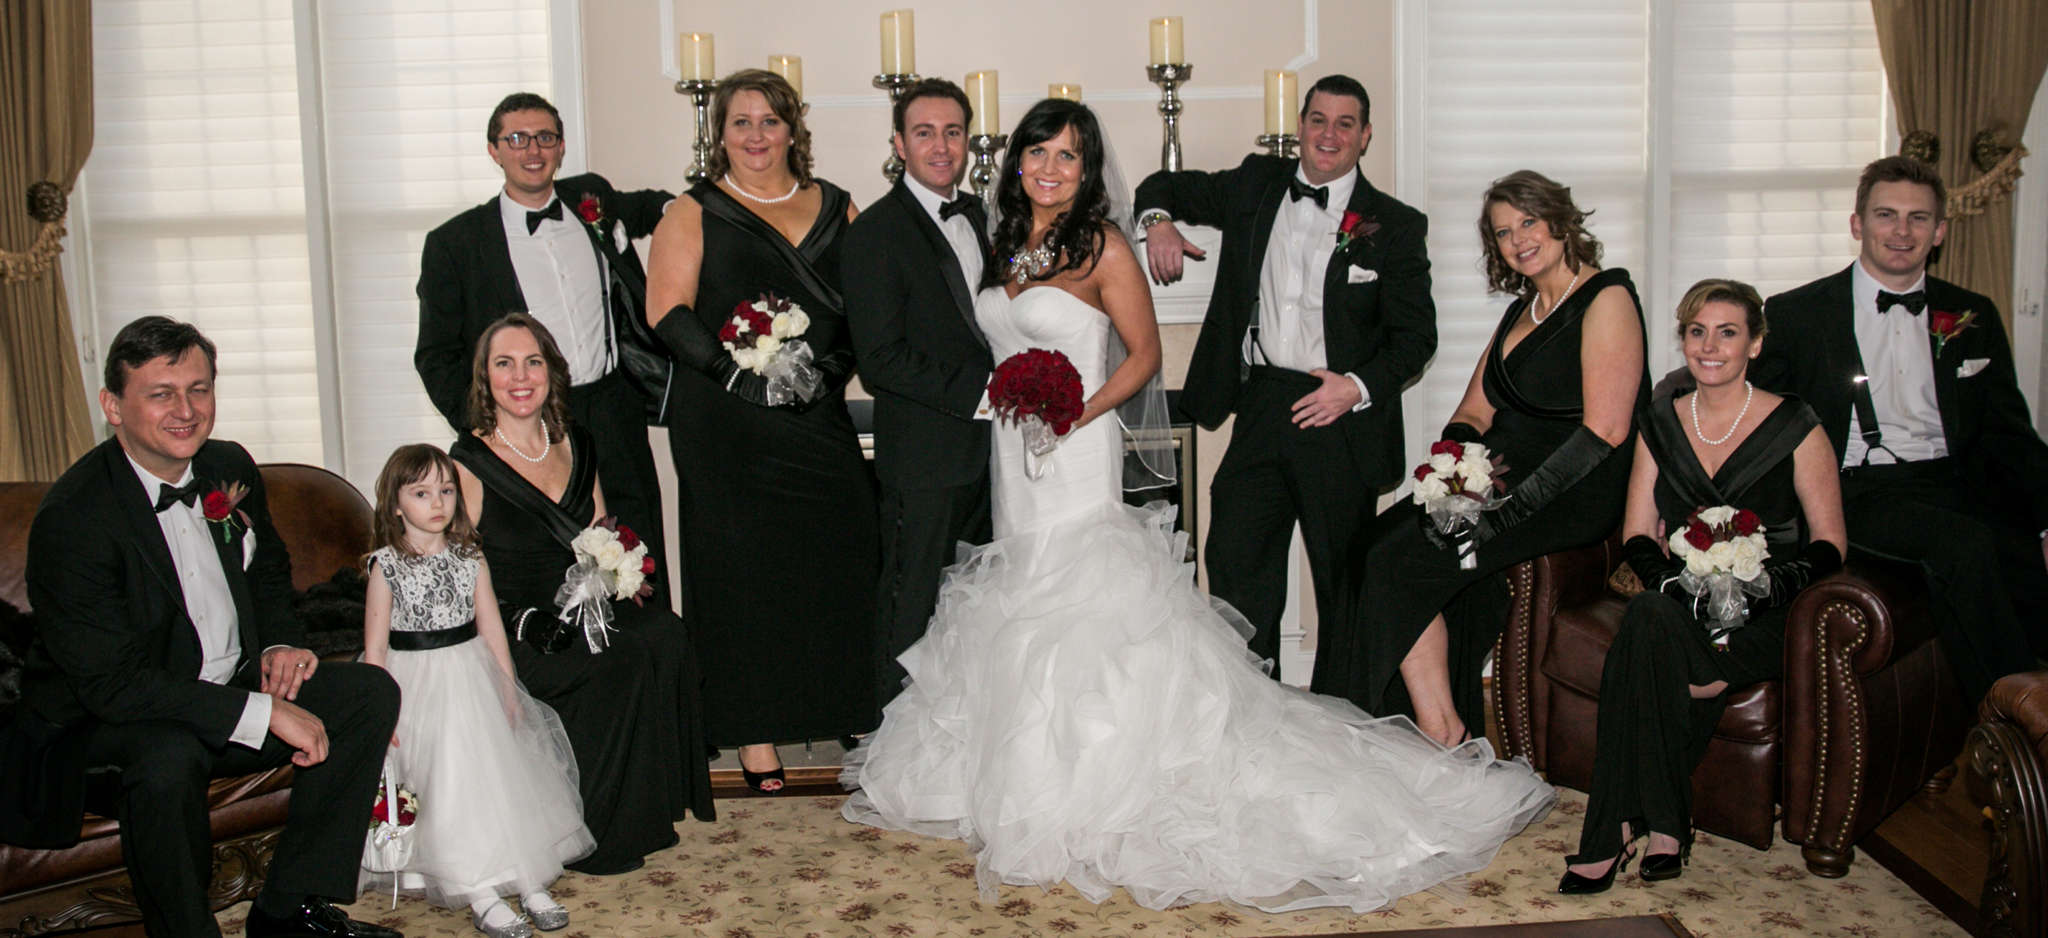 The bridal party with the groom and bride. From left are Joseph Willey, Grace Willey, Nicole Willey, Sean Mullin, Paula Galeano, John Iannozzi, Sue Weiss, Megan (Iannozzi) Grau, and Andrew Grau.